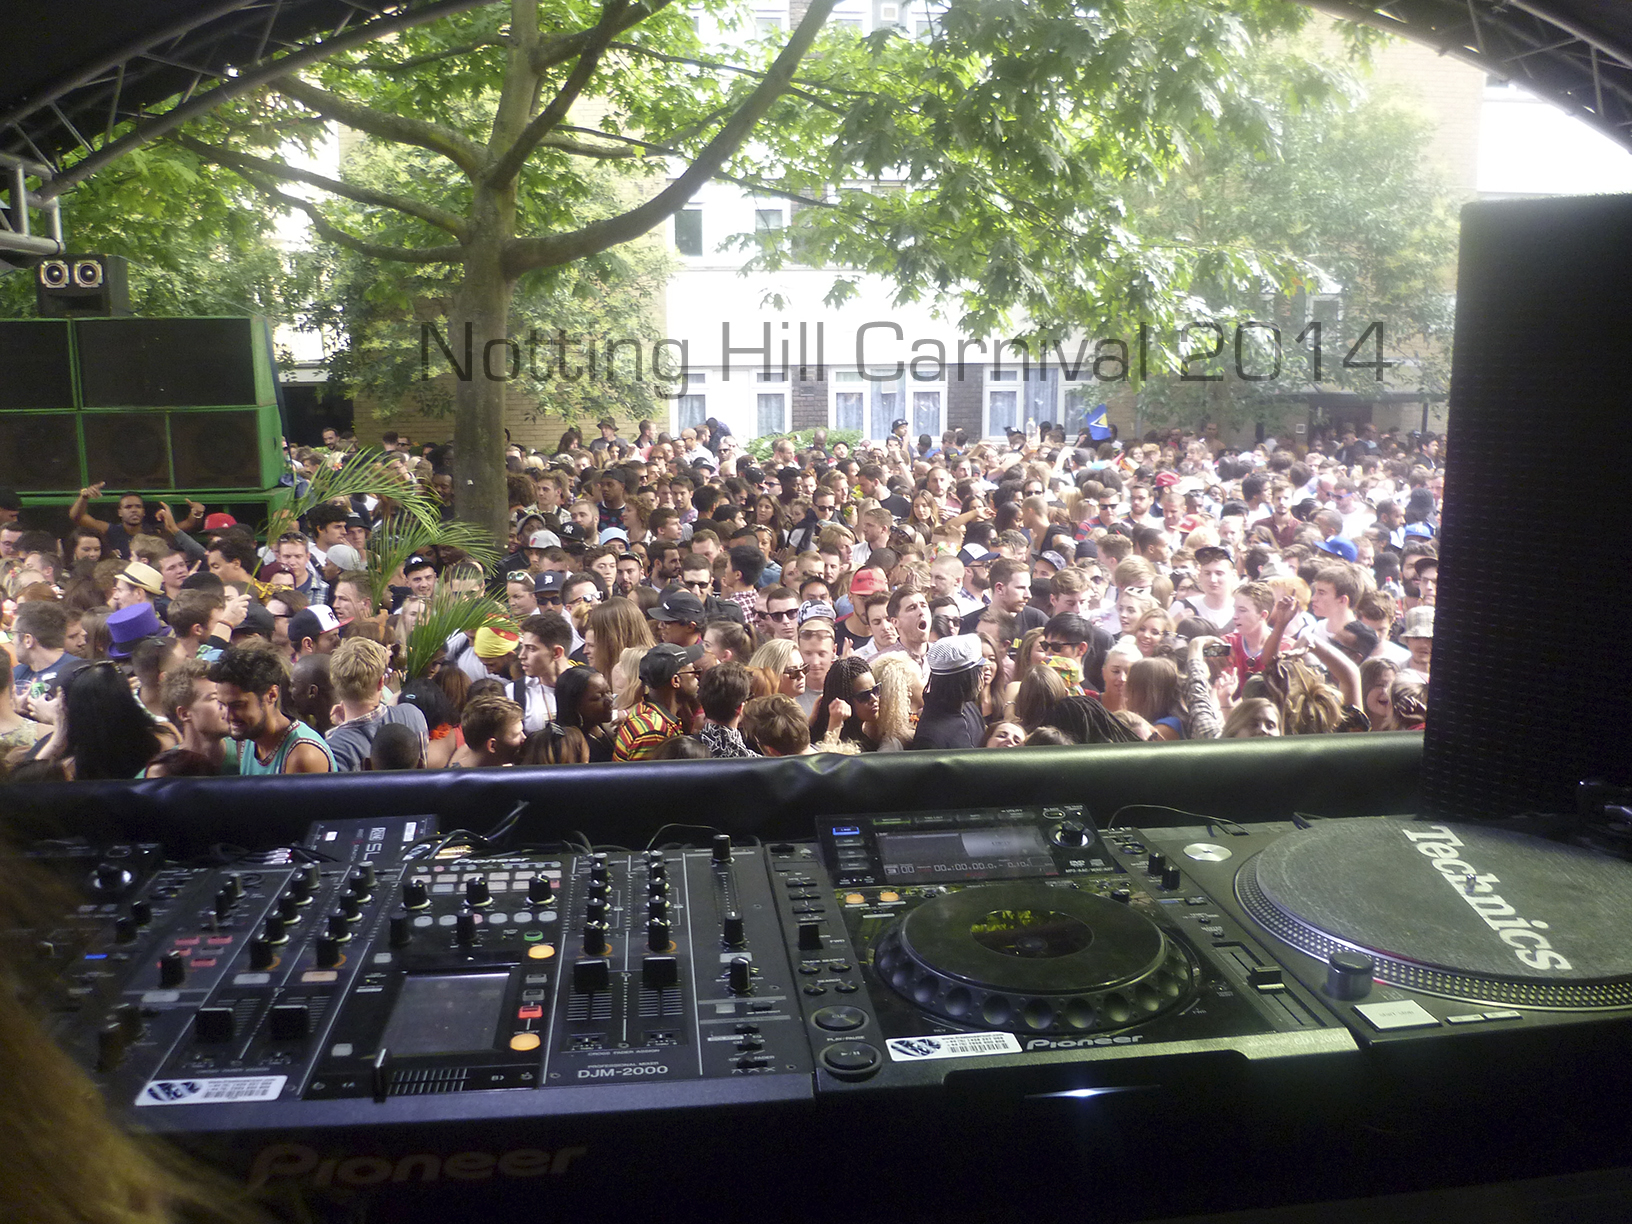 Sound Systems Notting Hill Carnival 2014 Datarhyme